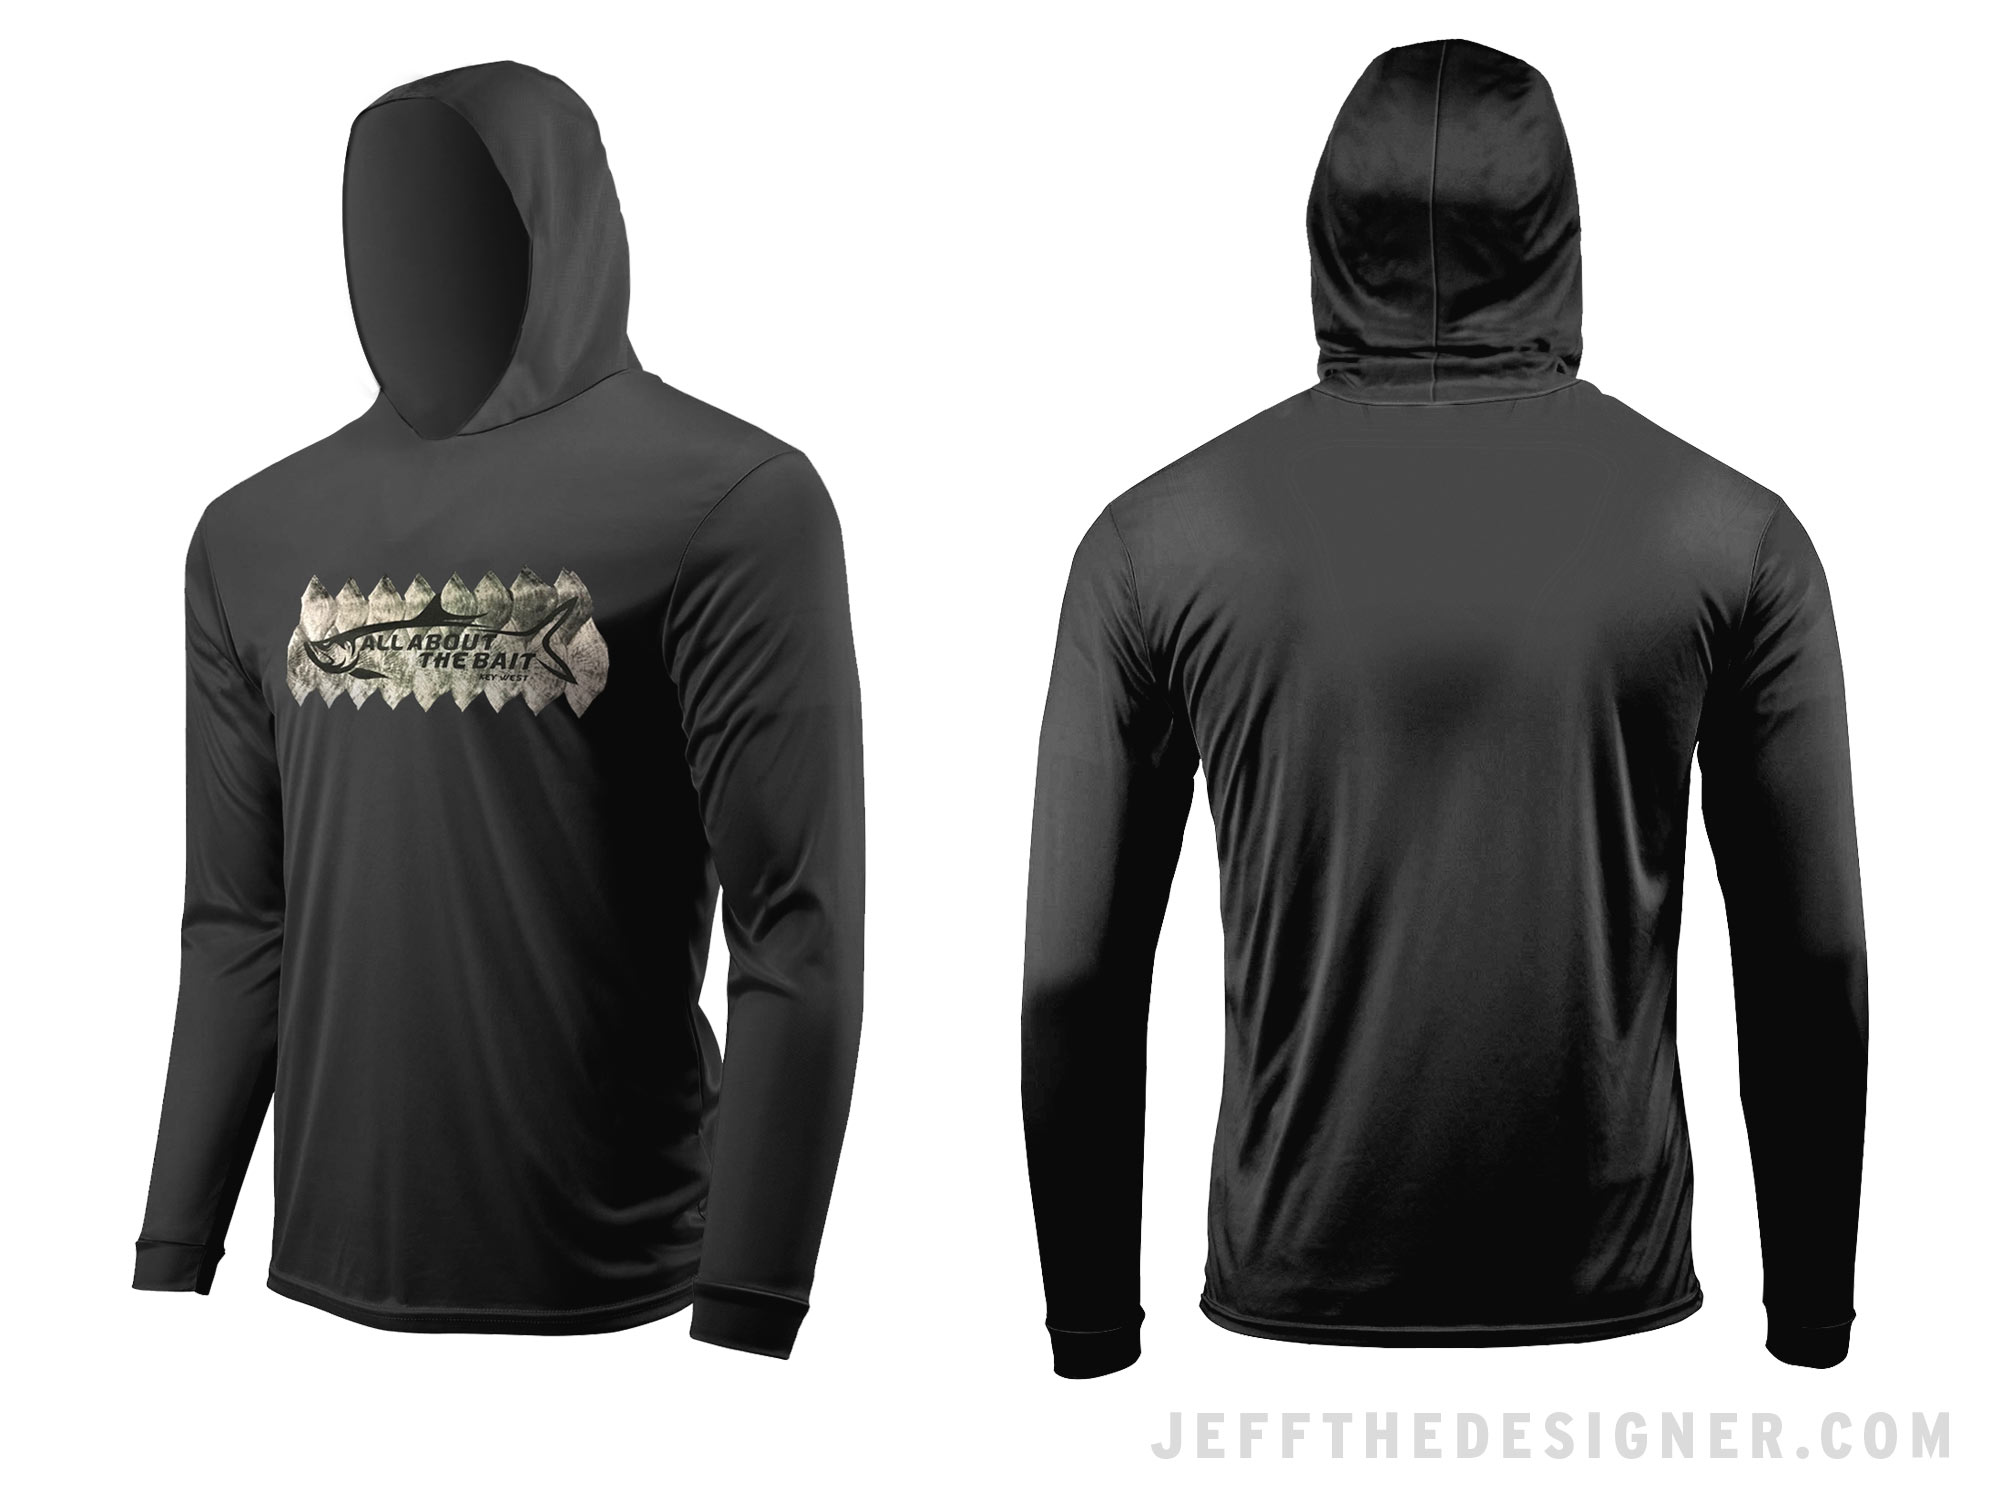 Black Hooded Long-Sleeve UV Protection Fishing Shirt with Silver Tarpon Logo on the Front